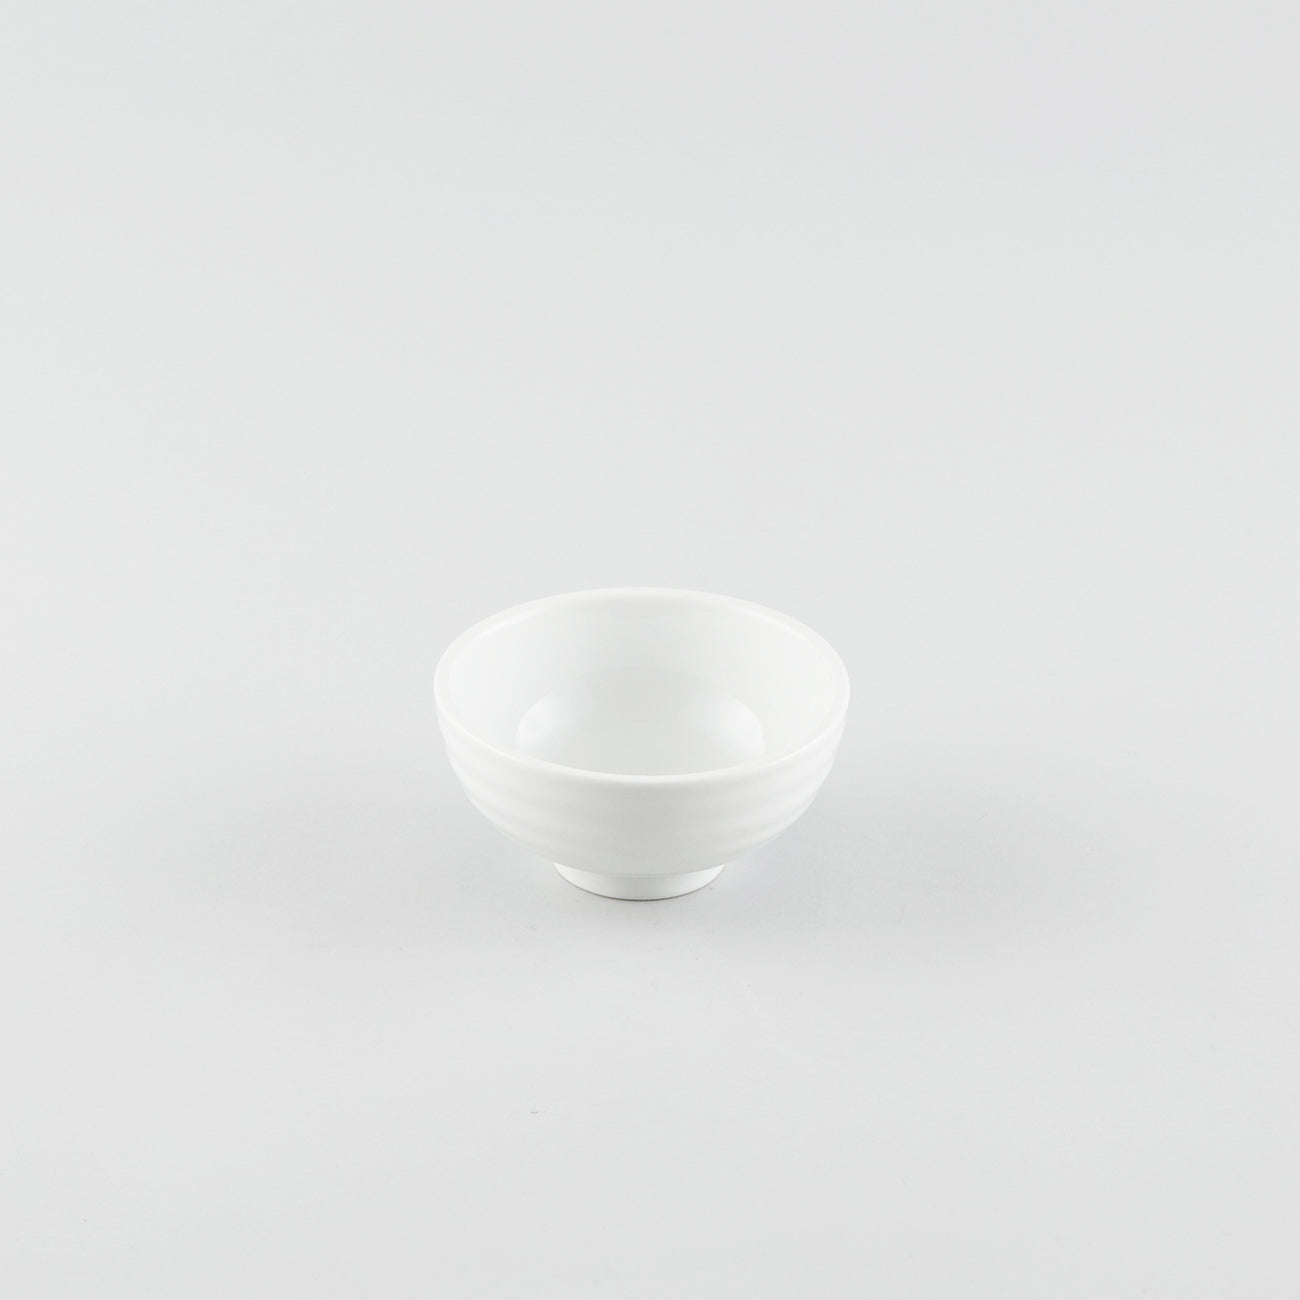 S-M Size Rice Bowl - White